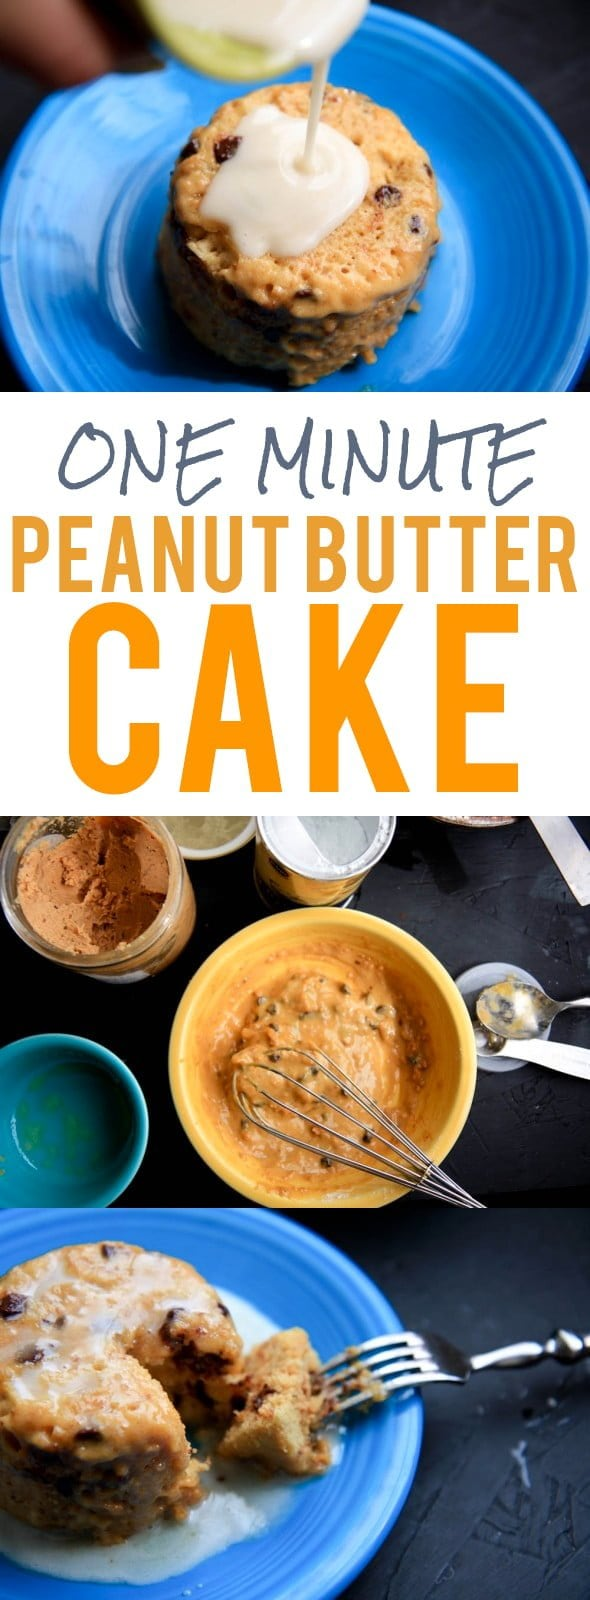 One Minute Peanut Butter Cake